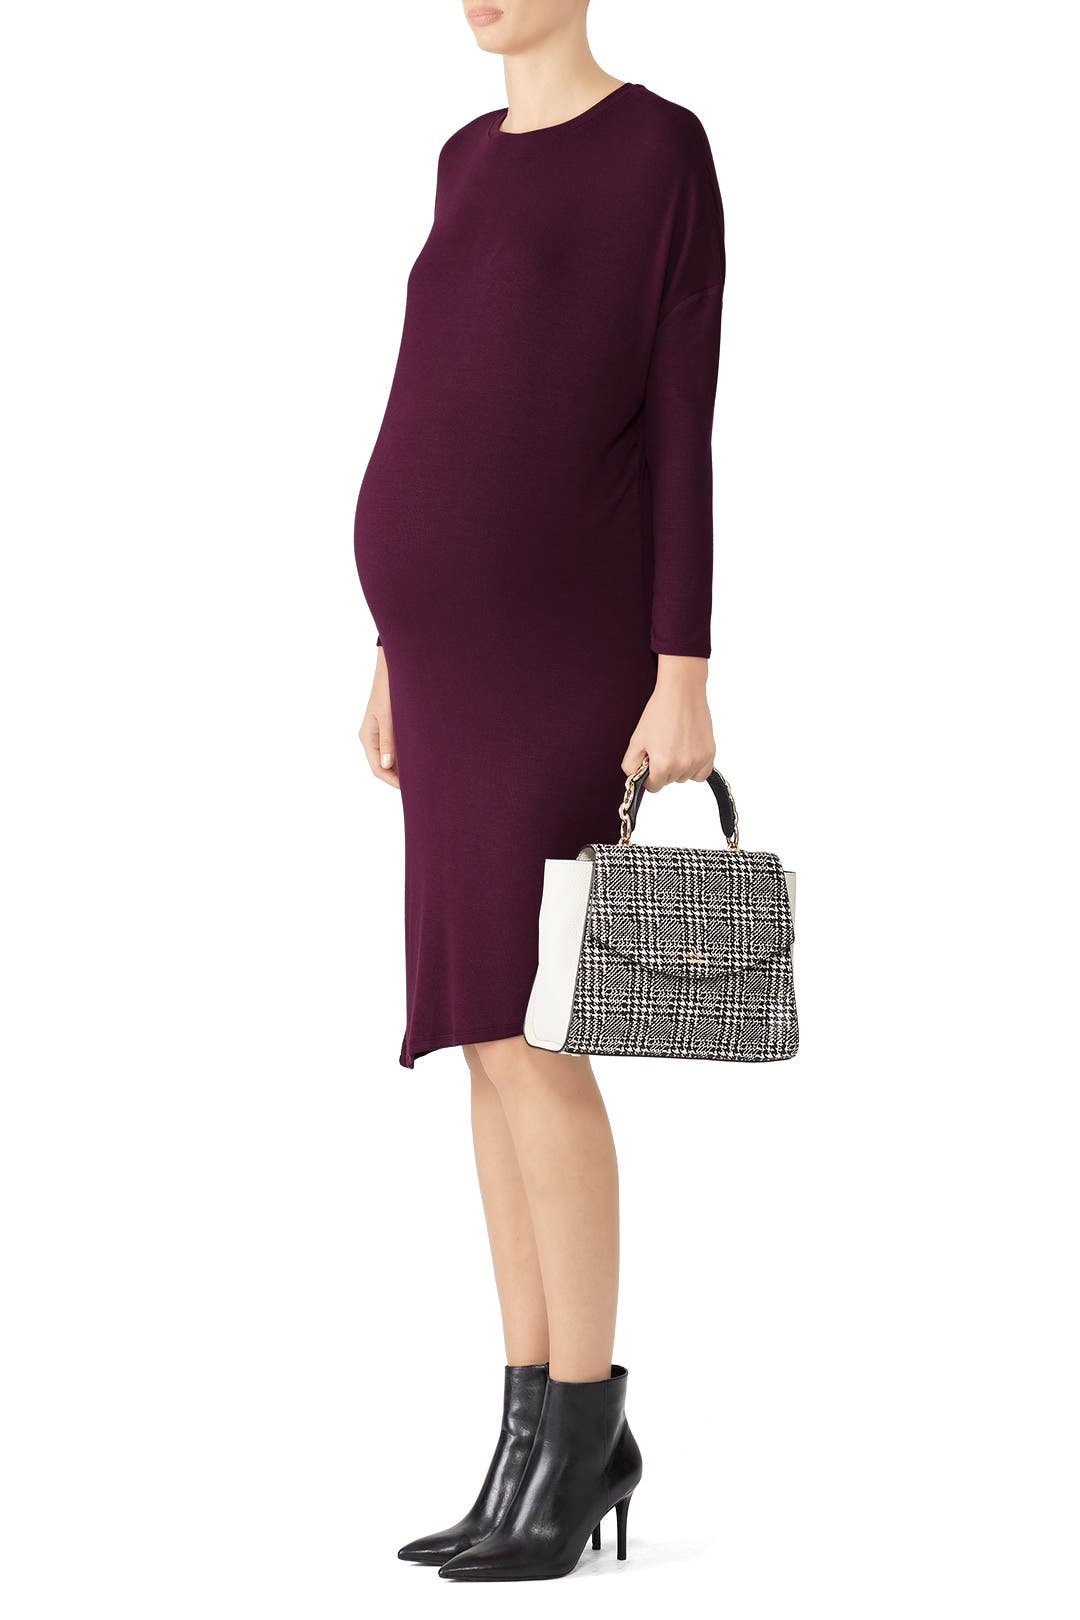 46f46abf2ec Plum Circle Tee Maternity Dress by Ingrid   Isabel for  30